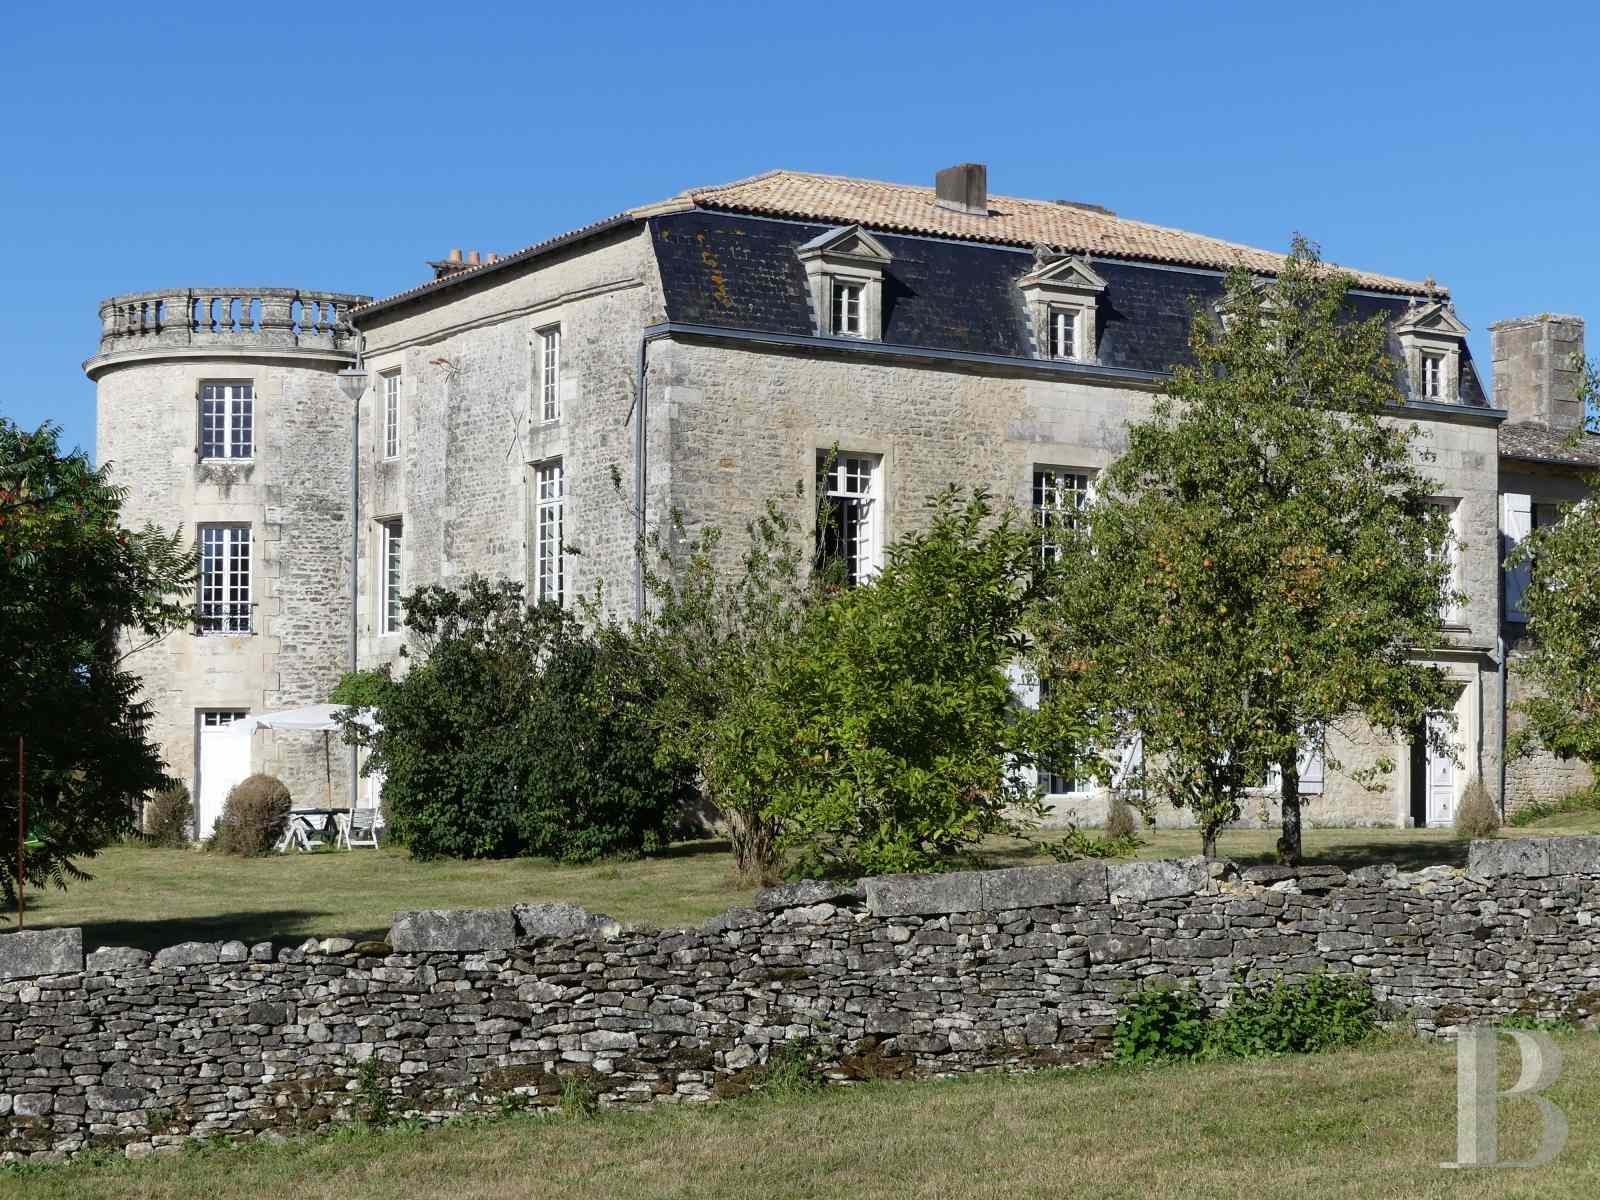 France mansions for sale poitou charentes 18th century - 3 zoom